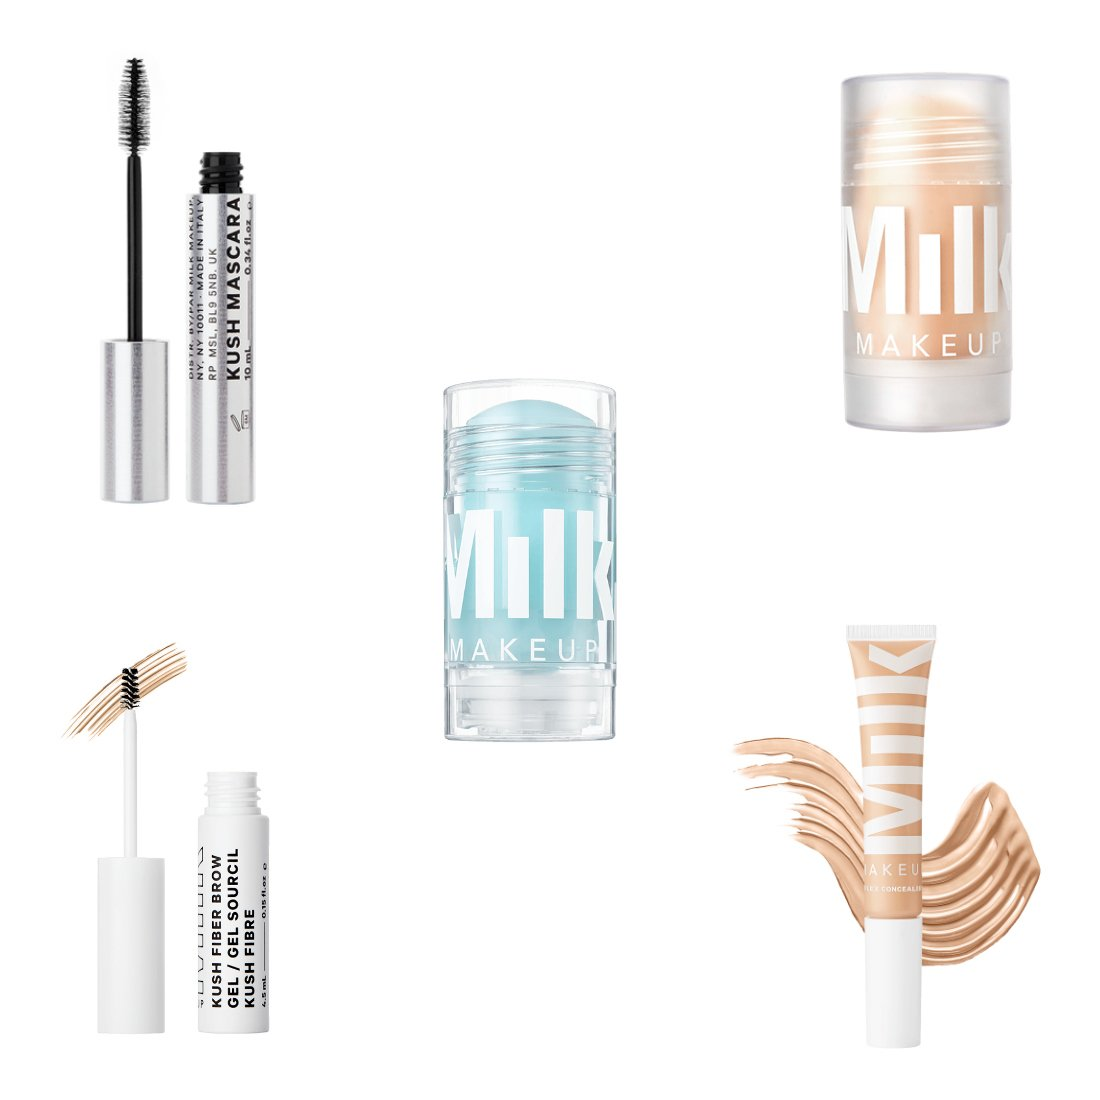 Five Milk Makeup Products You Need To Know About!